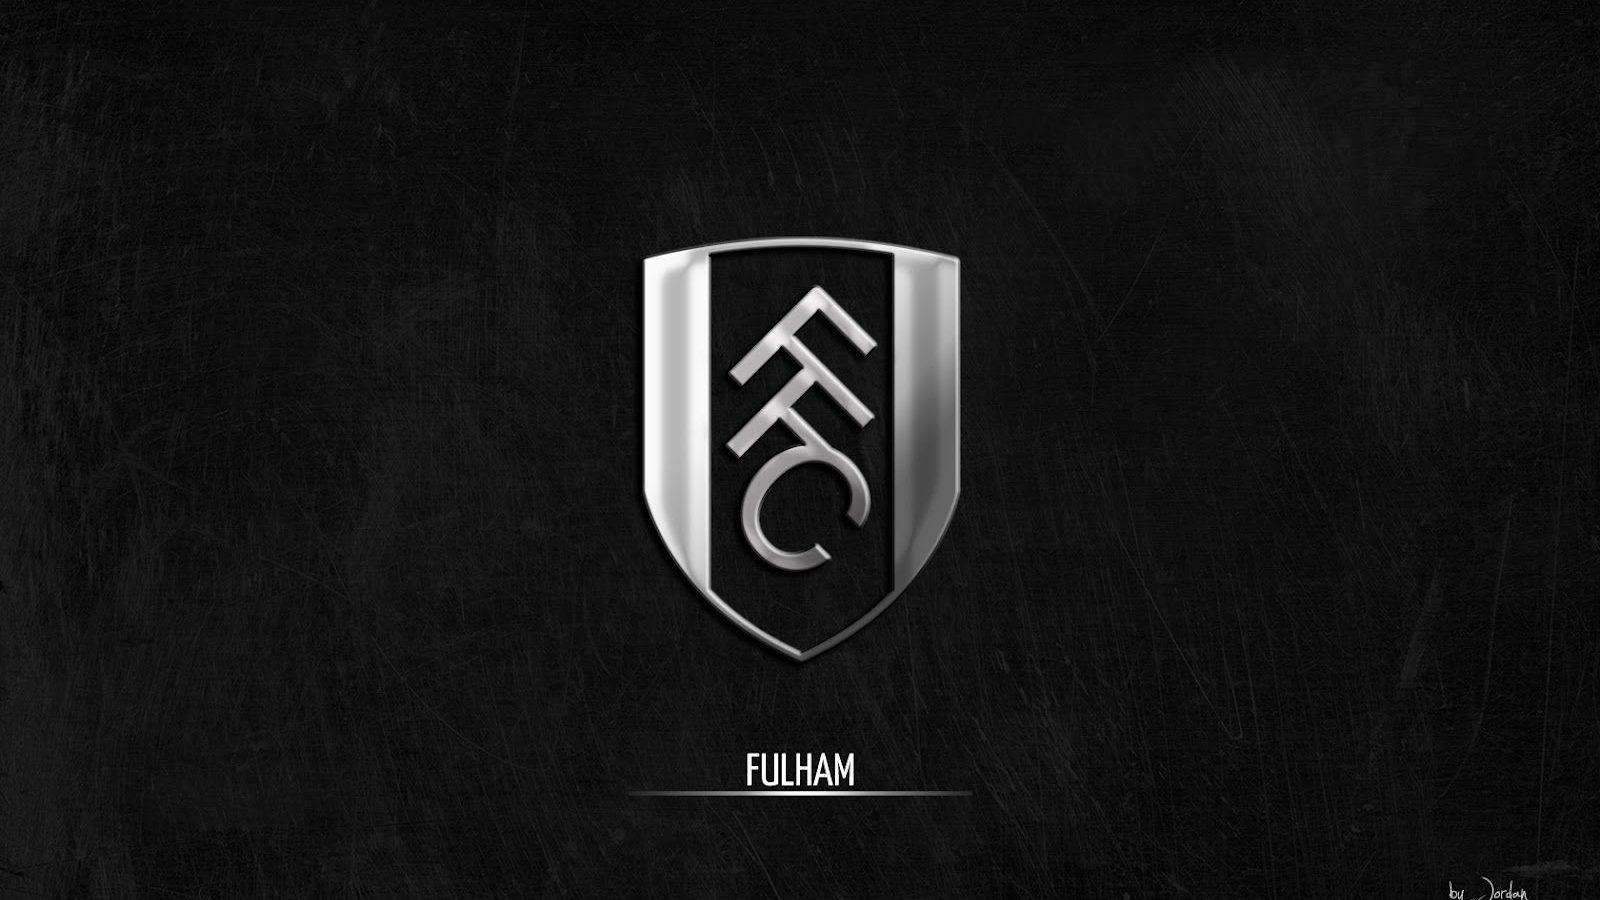 Cool Black And Silver Wallpapers Of Fulham FC's Logo